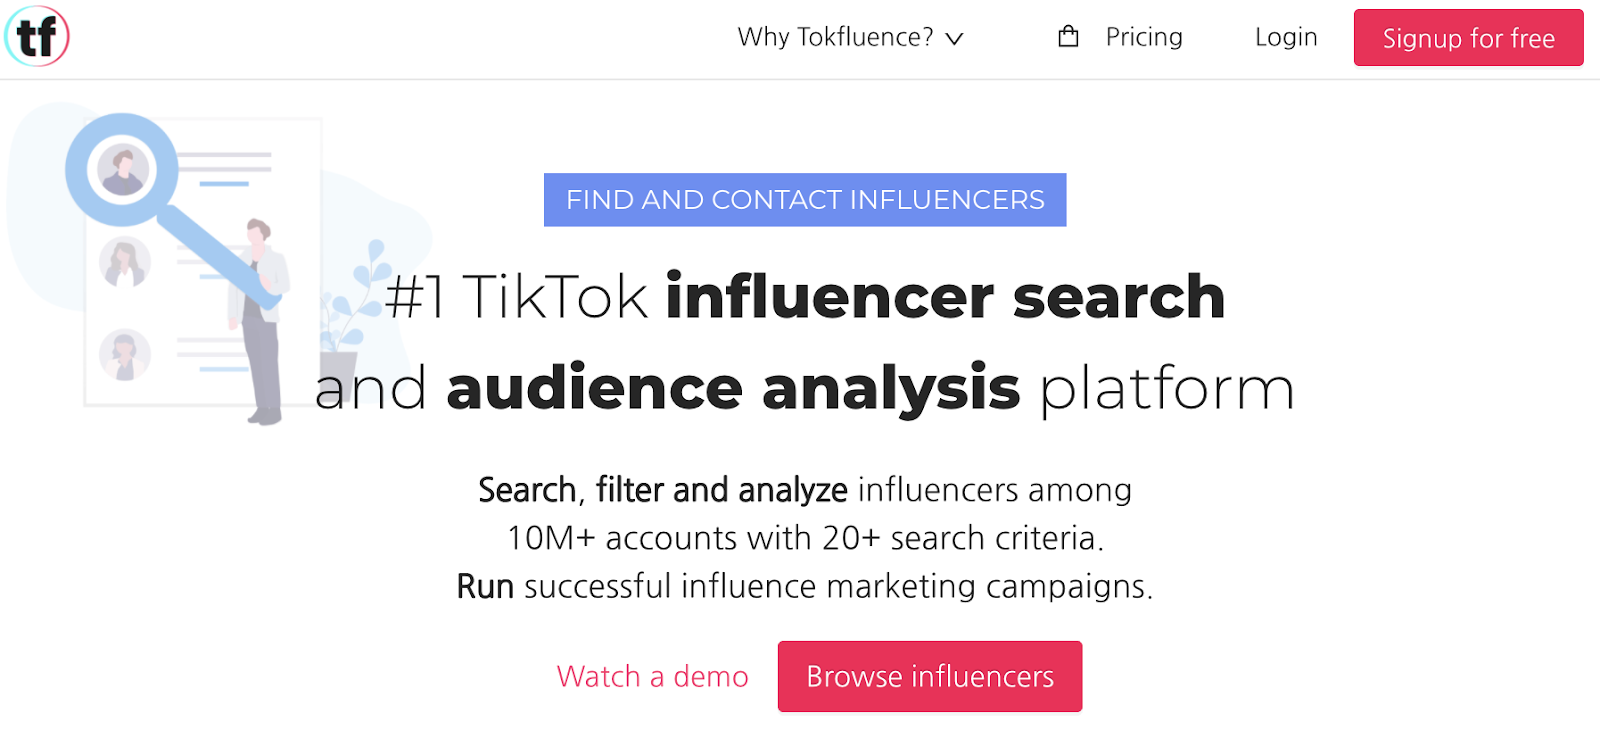 Tokfluence influence search and audience platform